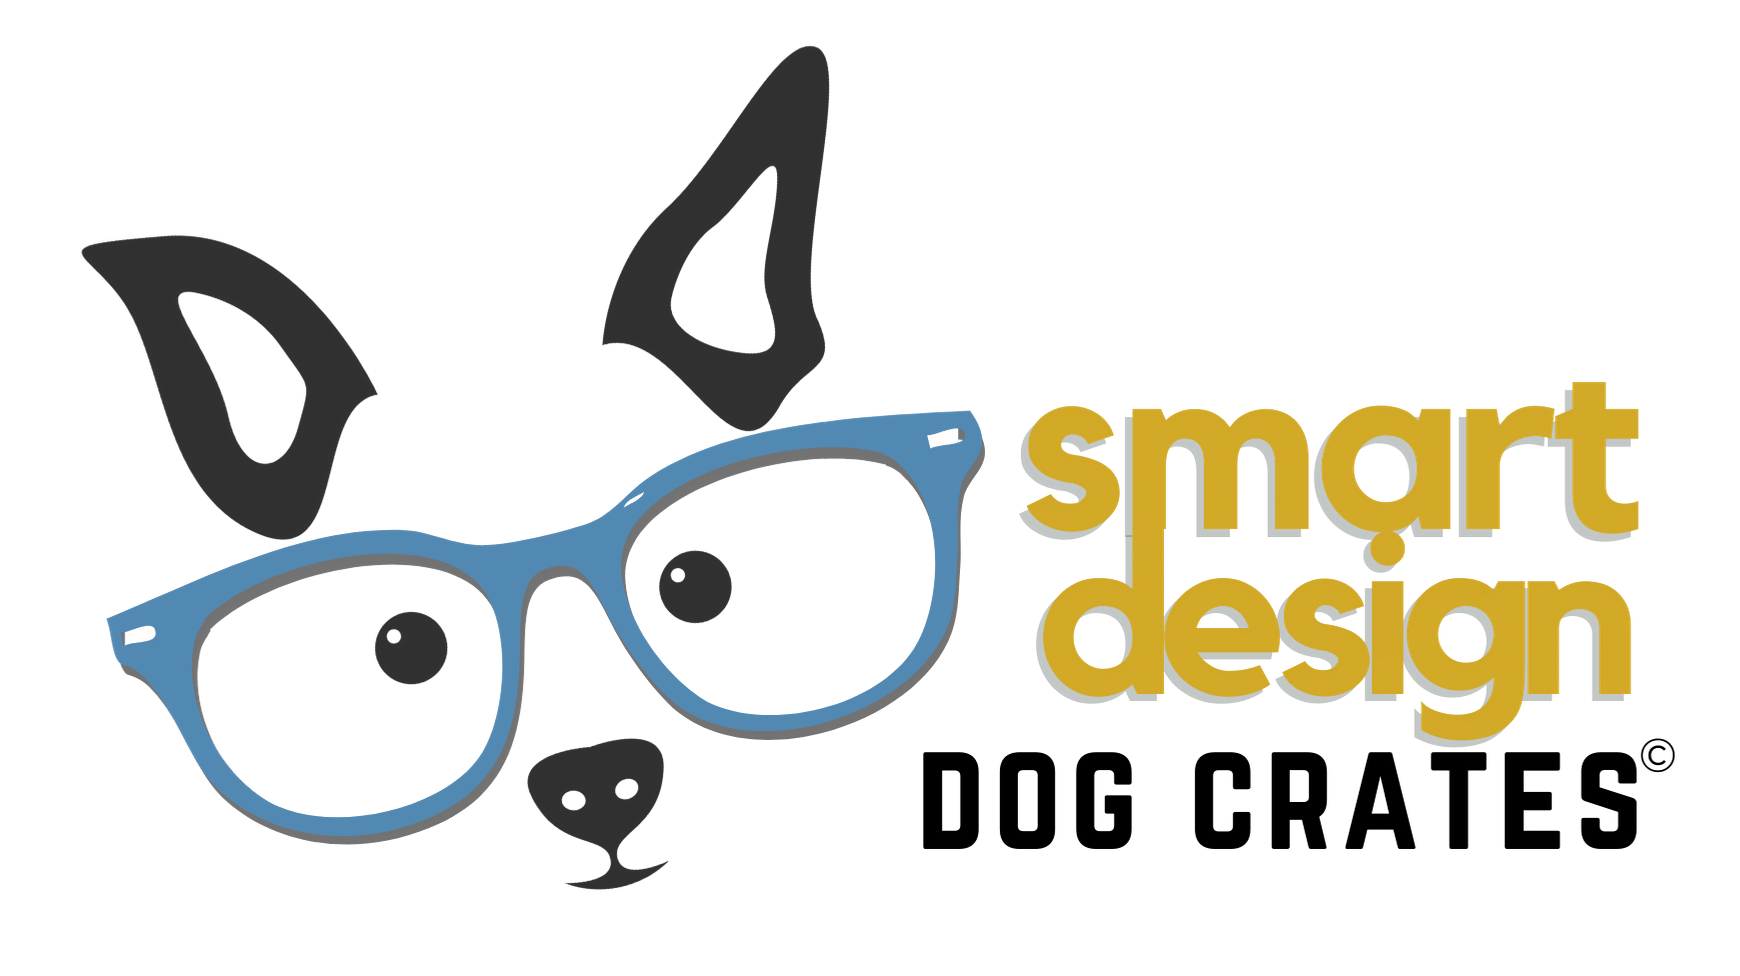 Smart Design Dog Crate furniture logo